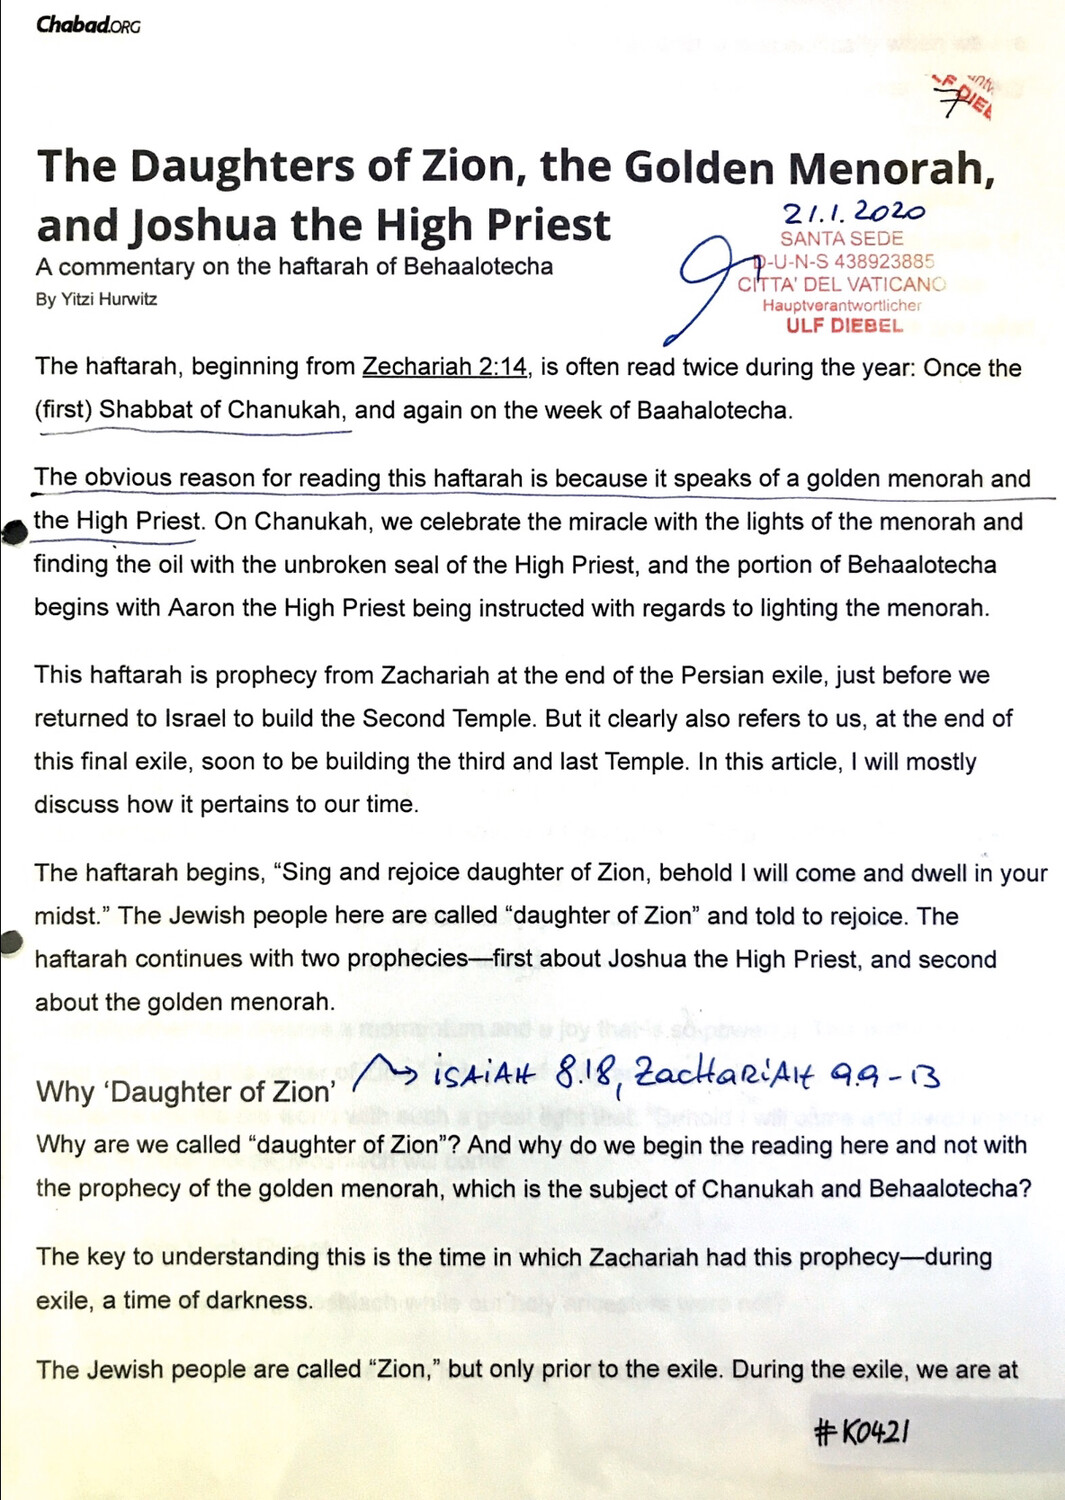 #K0421 l The Daughters of Zion, the Golden Menorah, and Joshua the High Priest, Chabad.org l Santa Sede - Hauptverantwortlicher Ulf Diebel